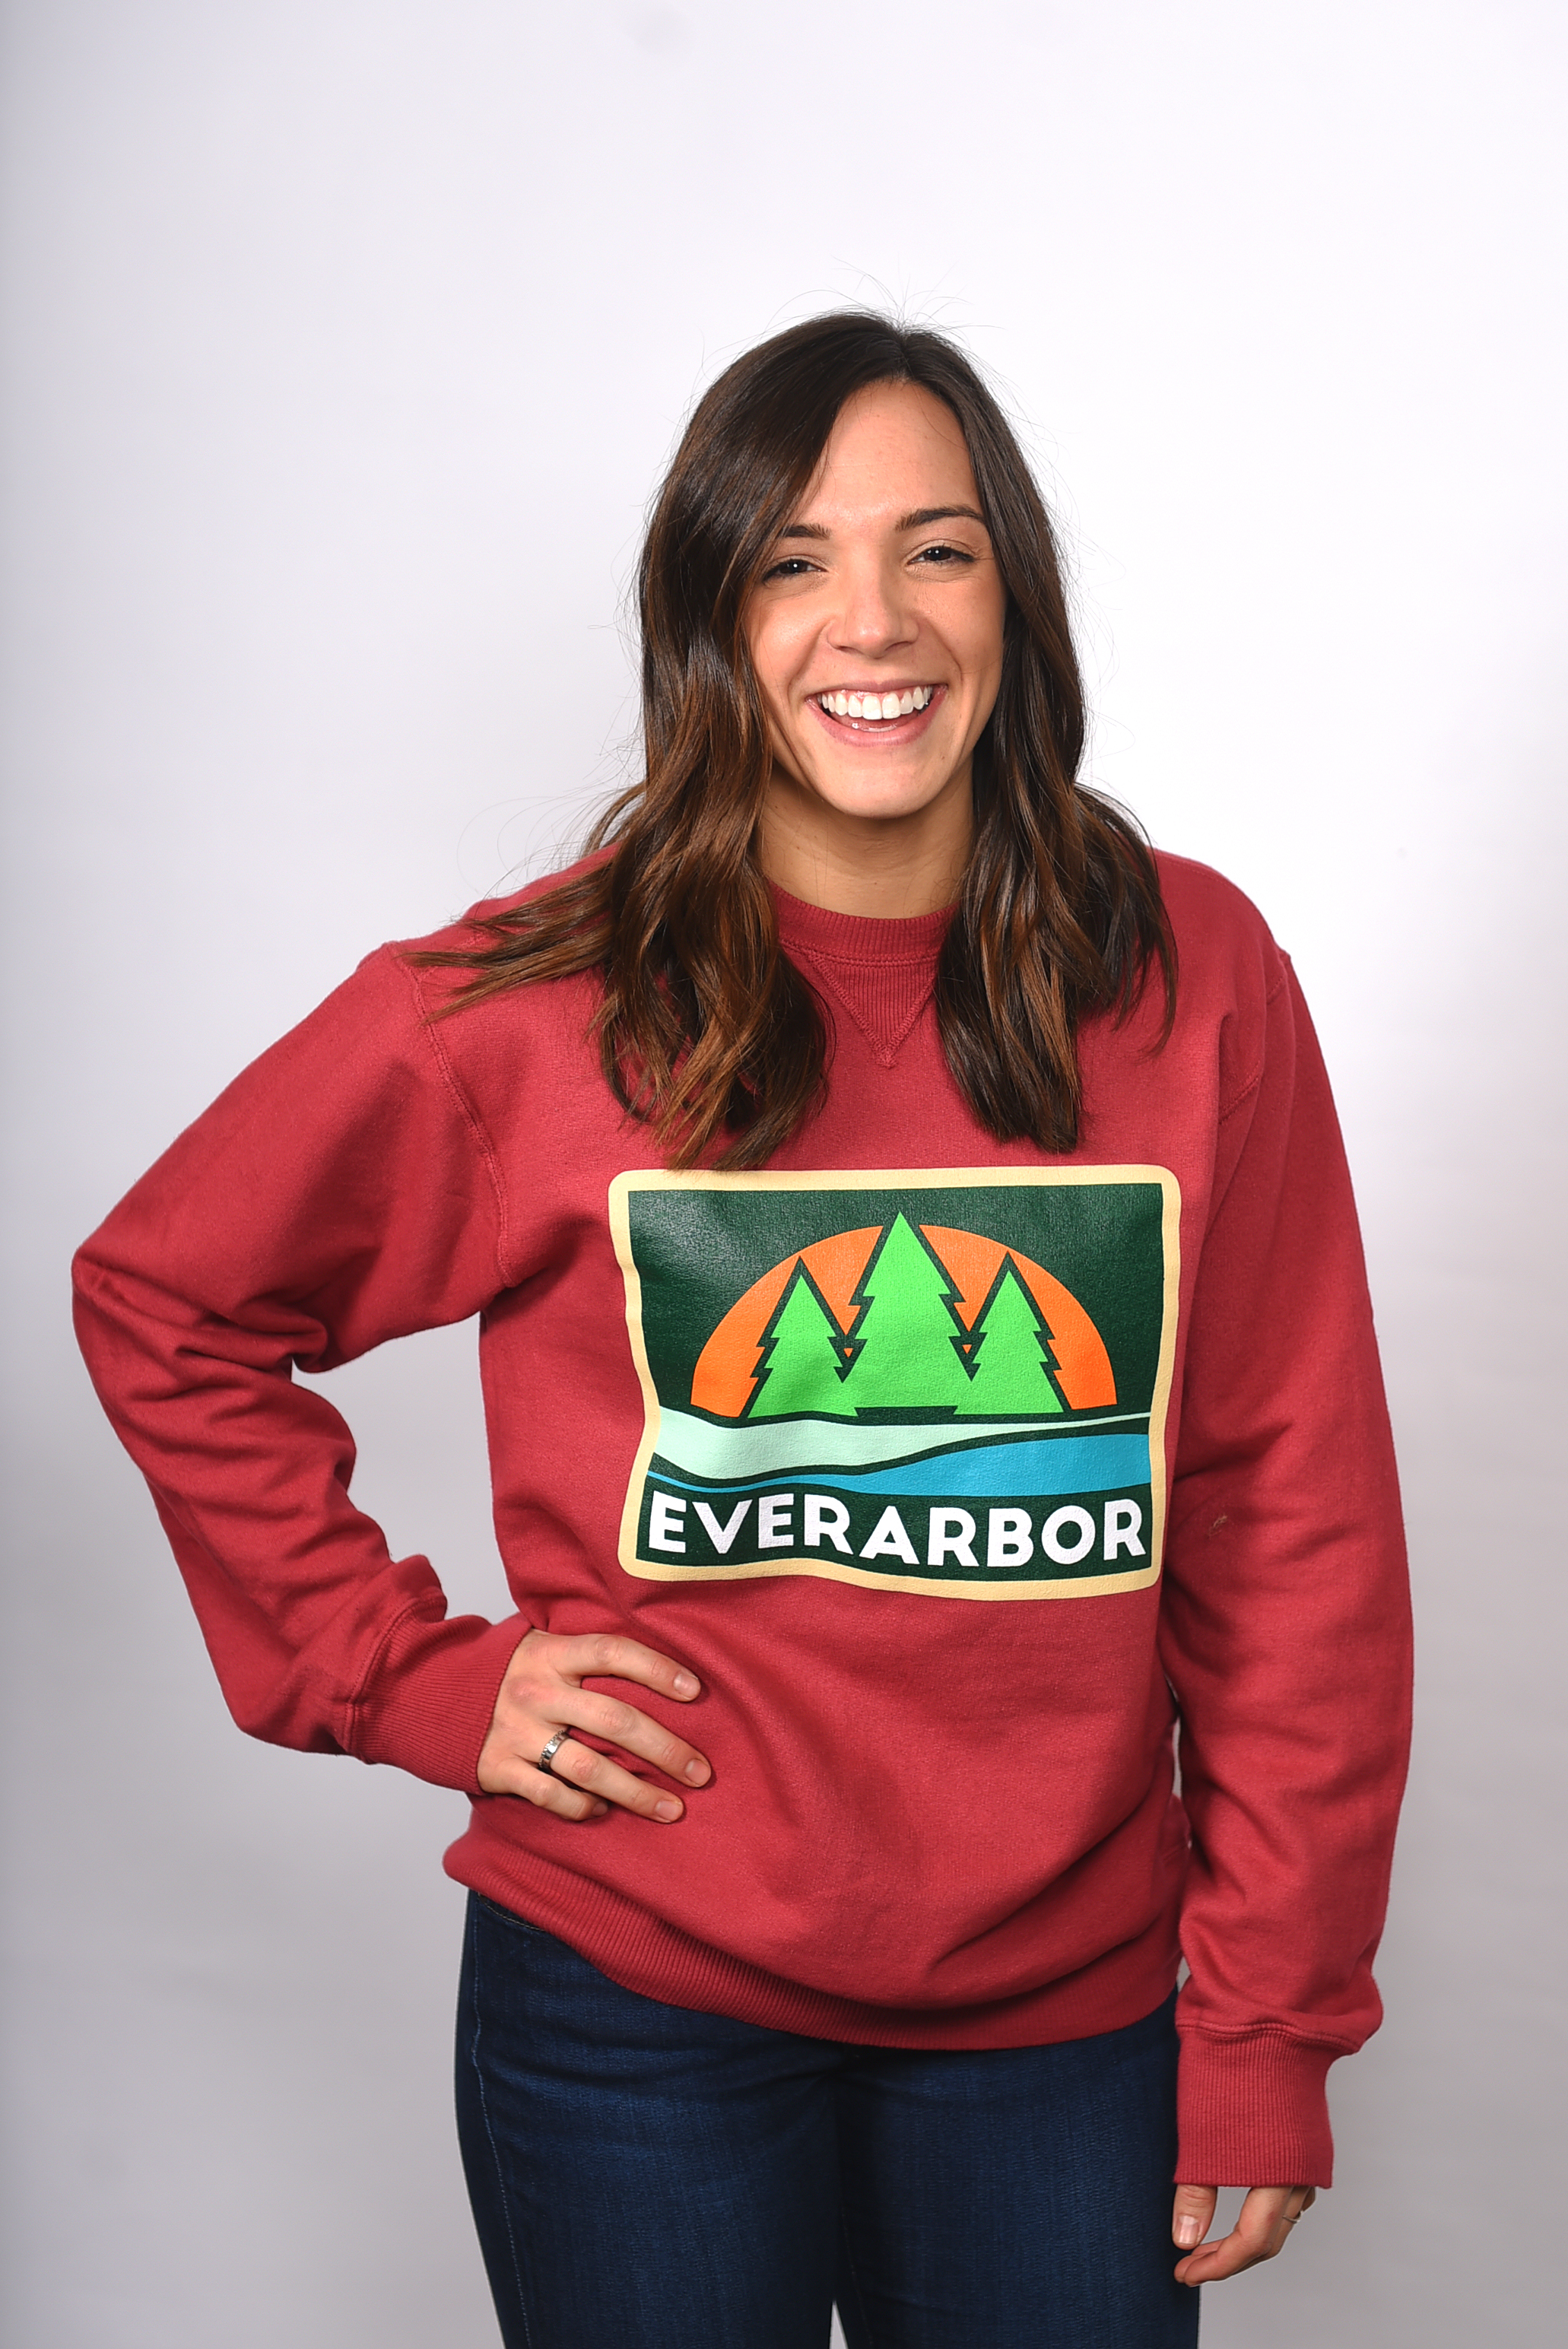 EVERARBOR_BRANDING_2019_KB0220.jpg